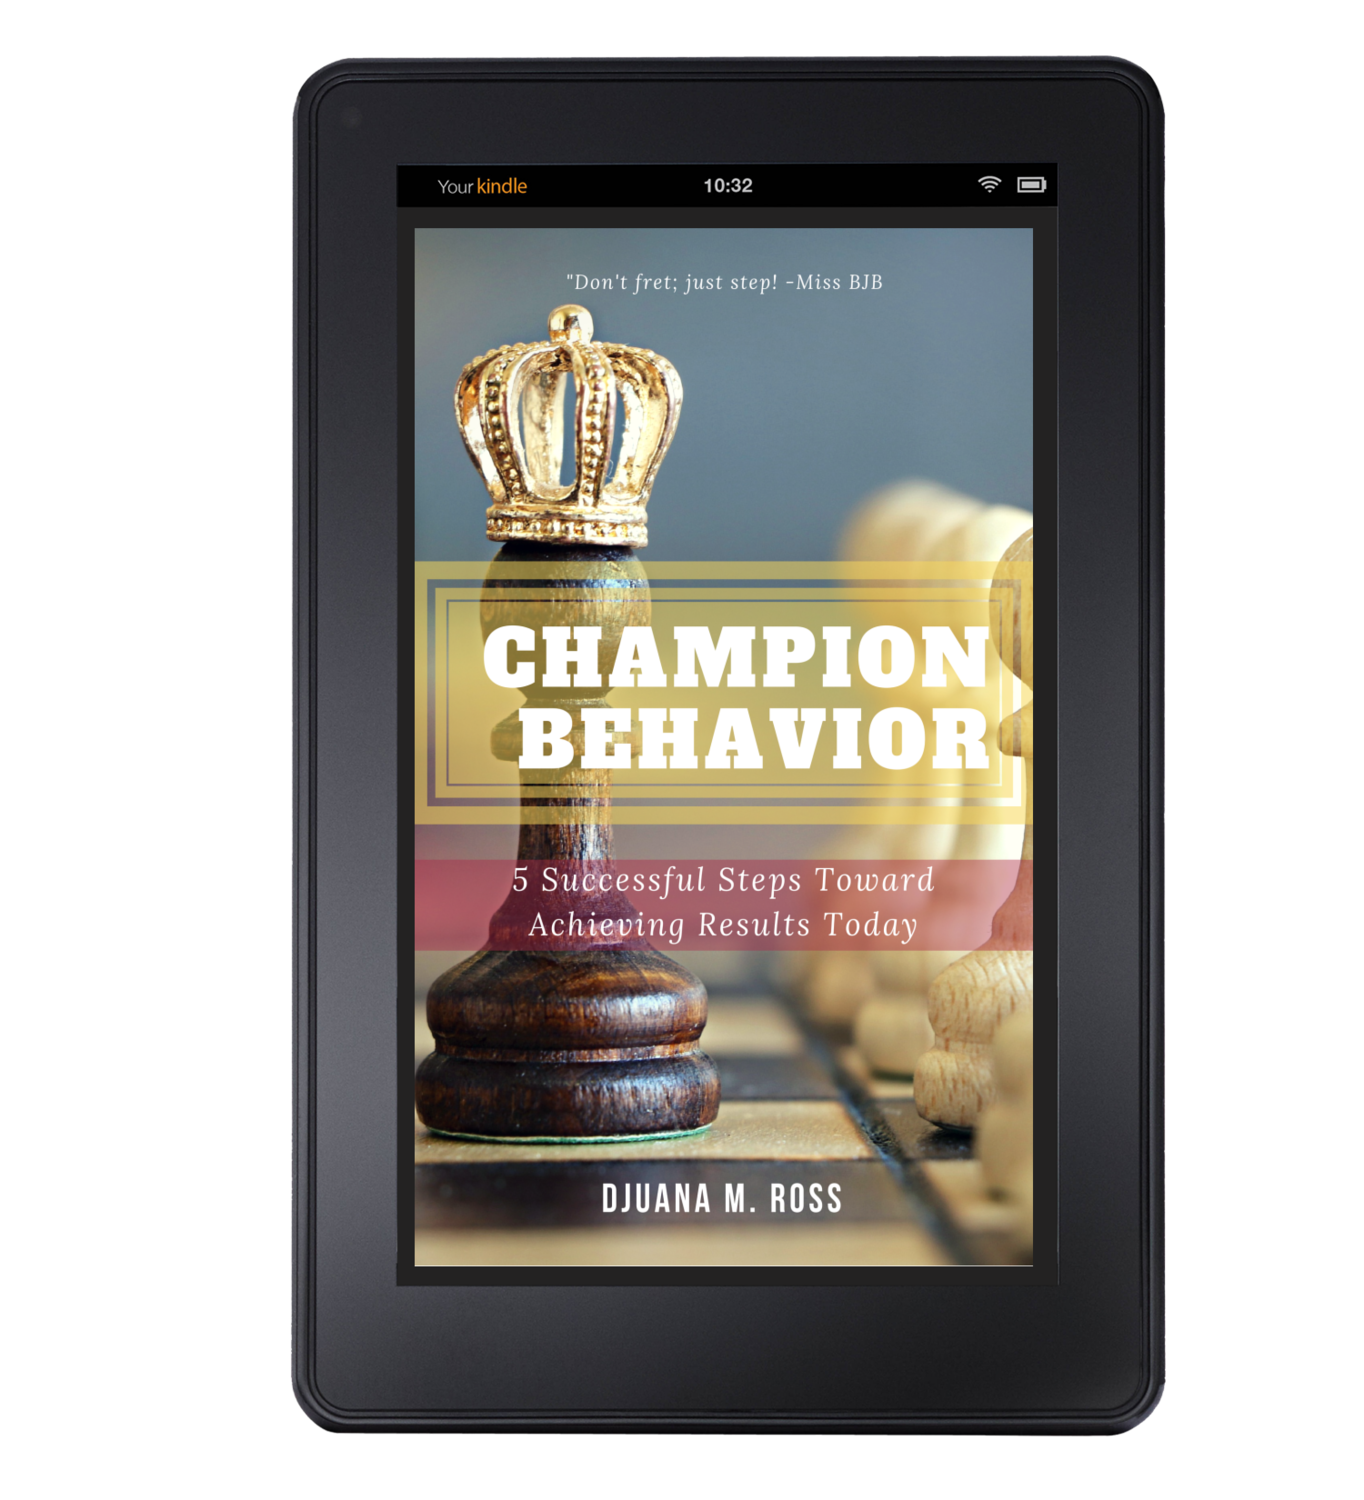 Champion Behavior: 5 Successful Steps Toward Achieving Results Today